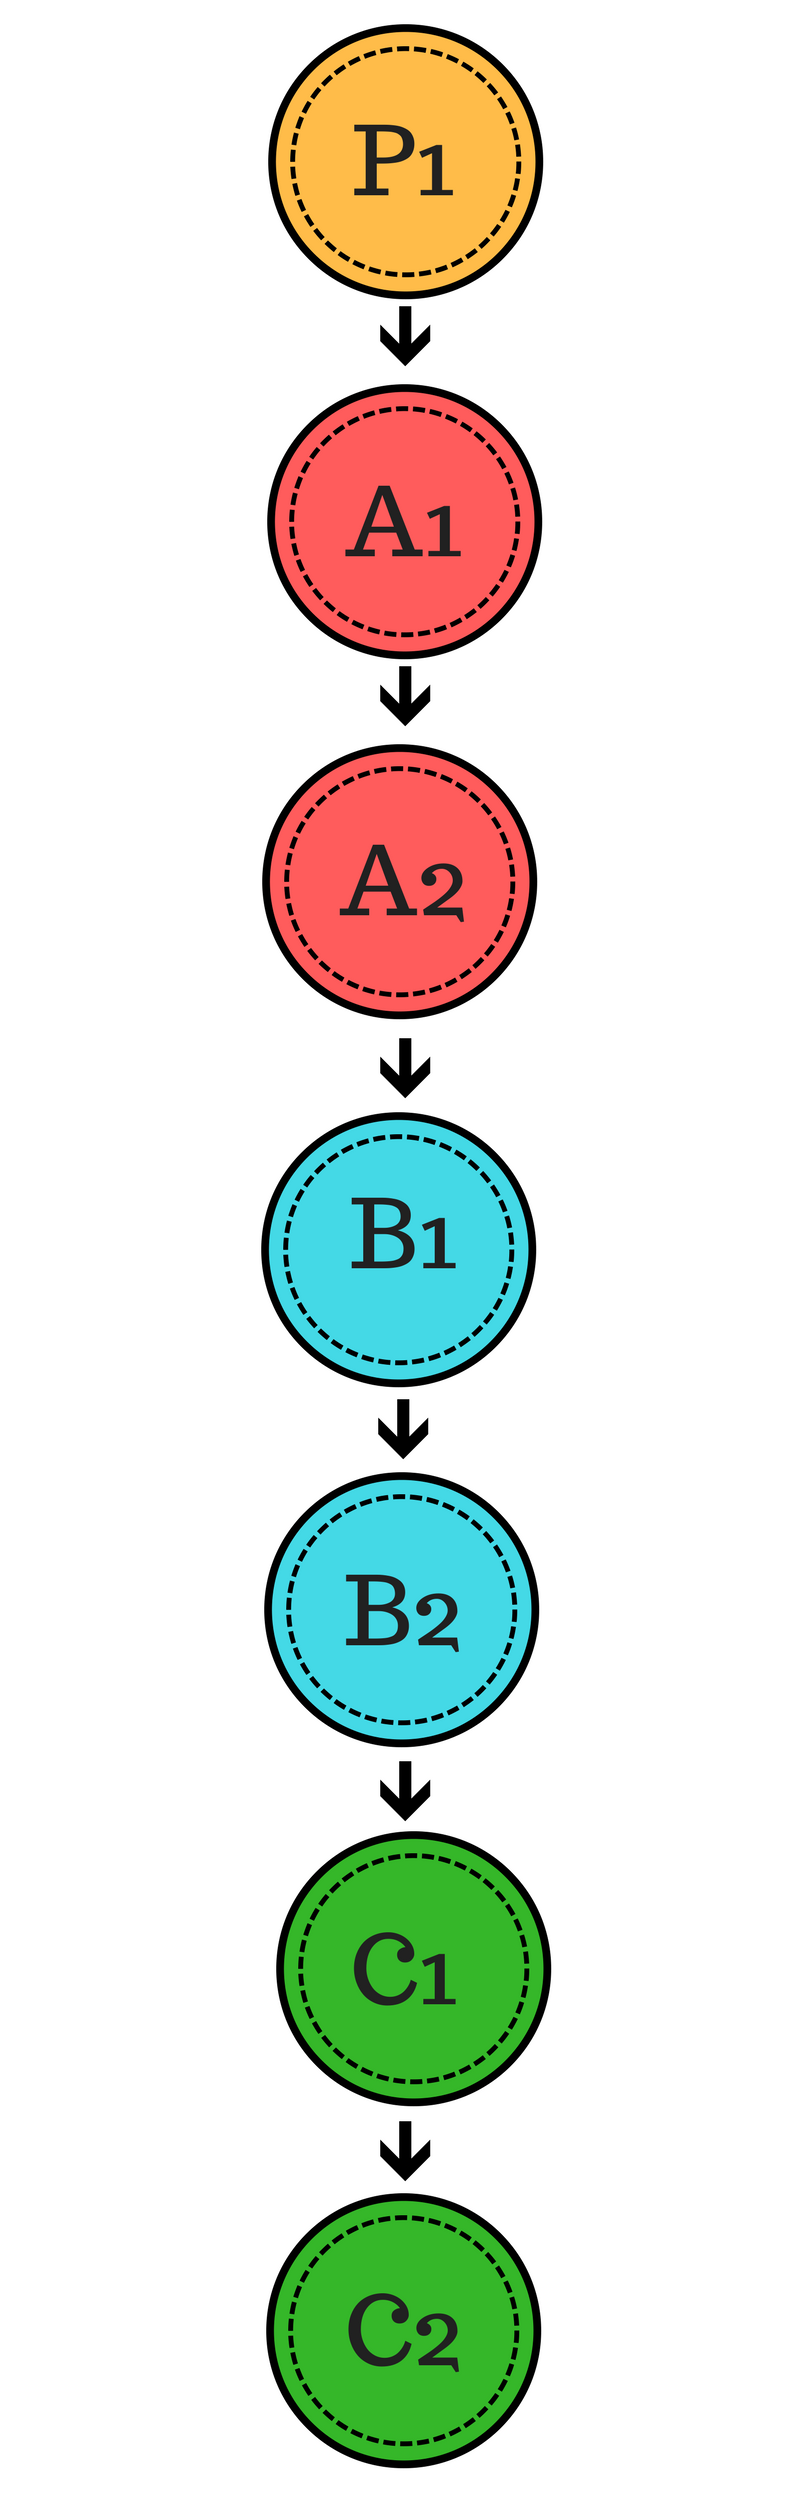 7 Levels to Mastery - We have developed an efficient curriculum that will be tailored to your specific objectives and goals.*This is confusing: 7 levels and then it is called P1, A1- just call it Level 1, 2, 3, etc}*The 48 hours is confusing because it could imply 2 day cycle which is what I thought.*Change it to 50 hours or call it